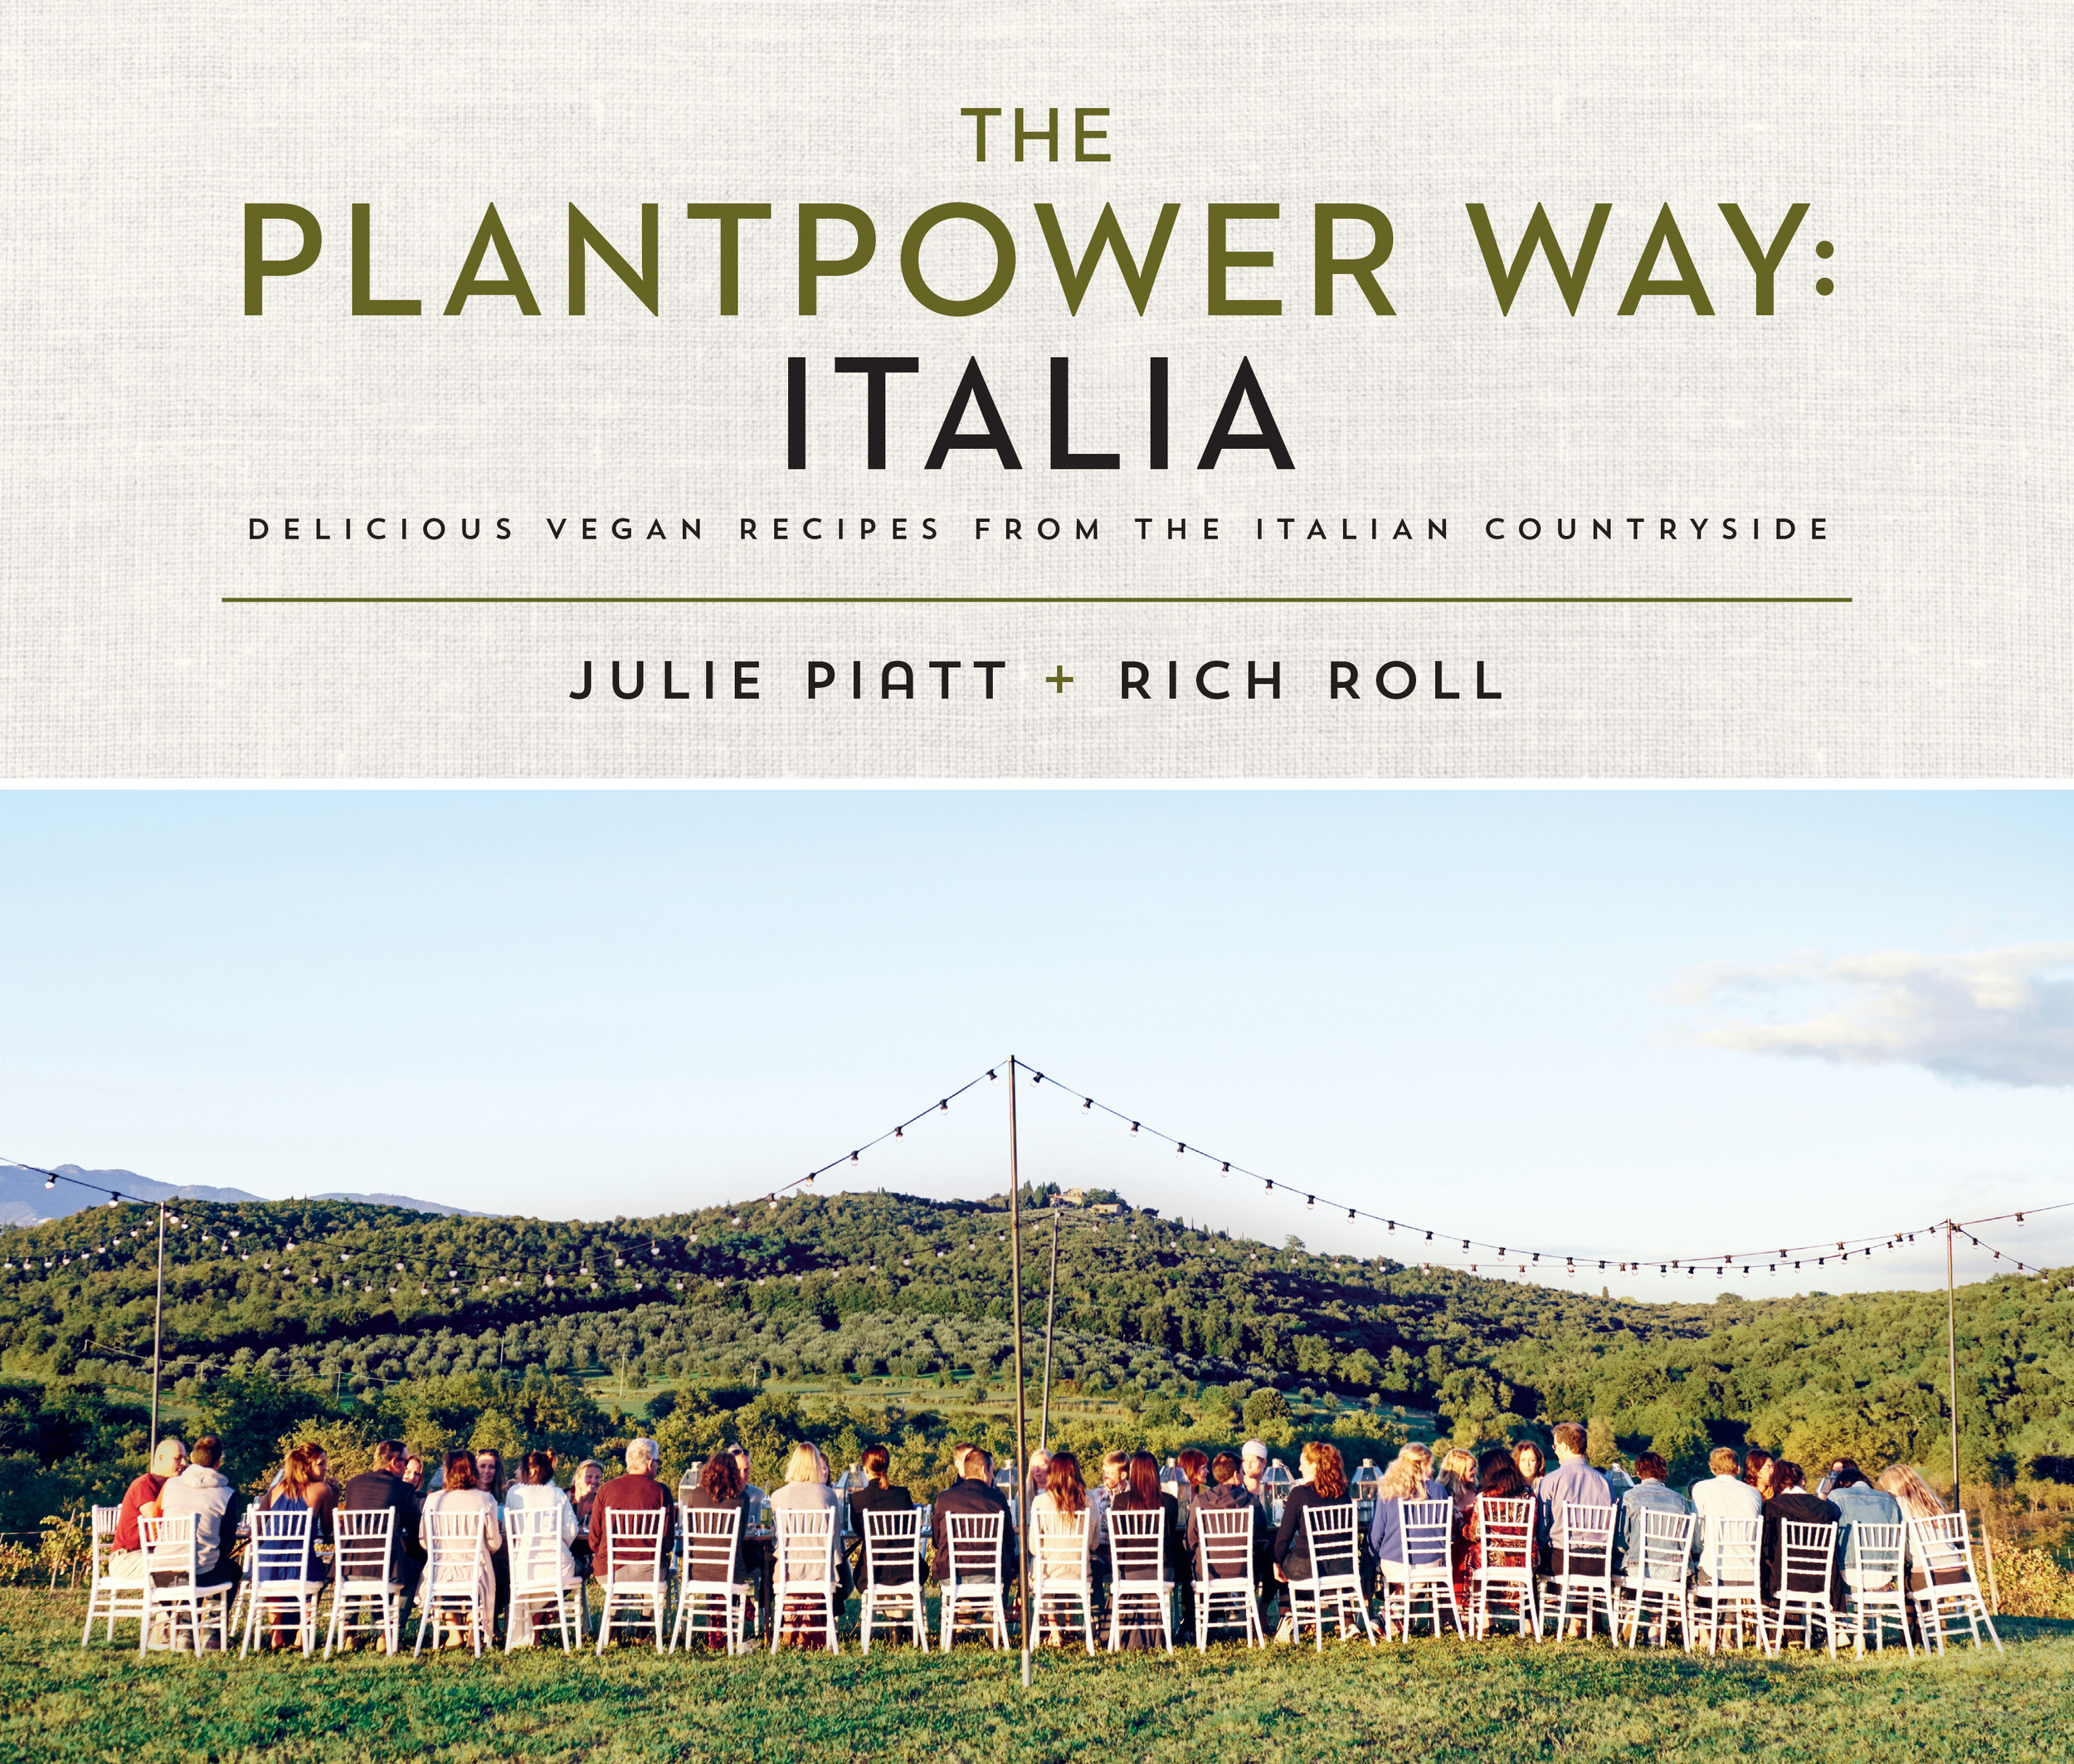 9780735217591_The Plantpower Way Italia.jpg